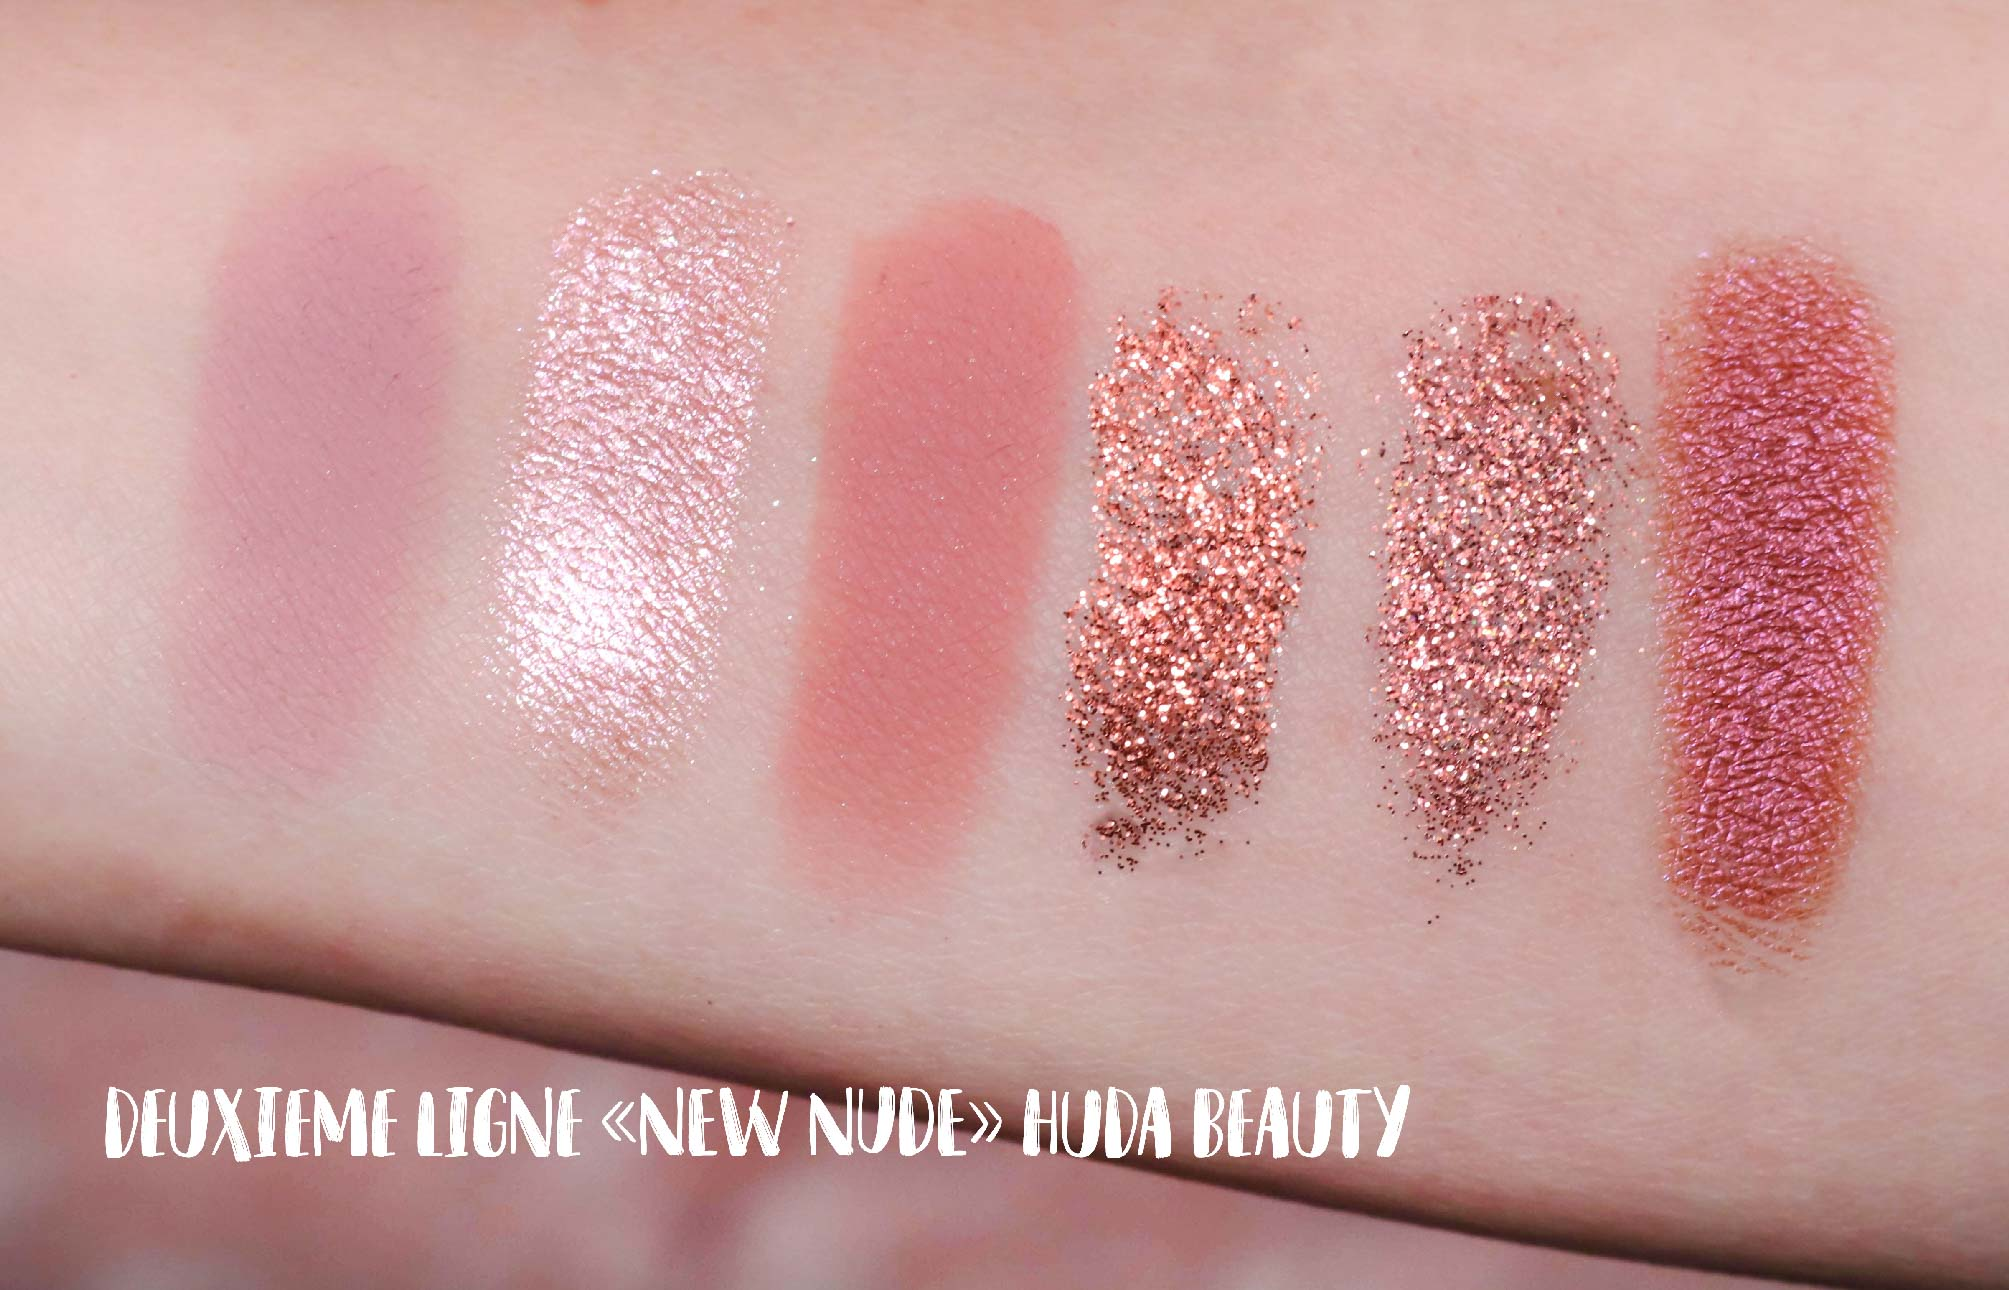 revue-review-palette-new-nude-obsessions-huda-beauty-nacre-sephora-avis-prix-swatch-makeupbyazadig-paillettes-2